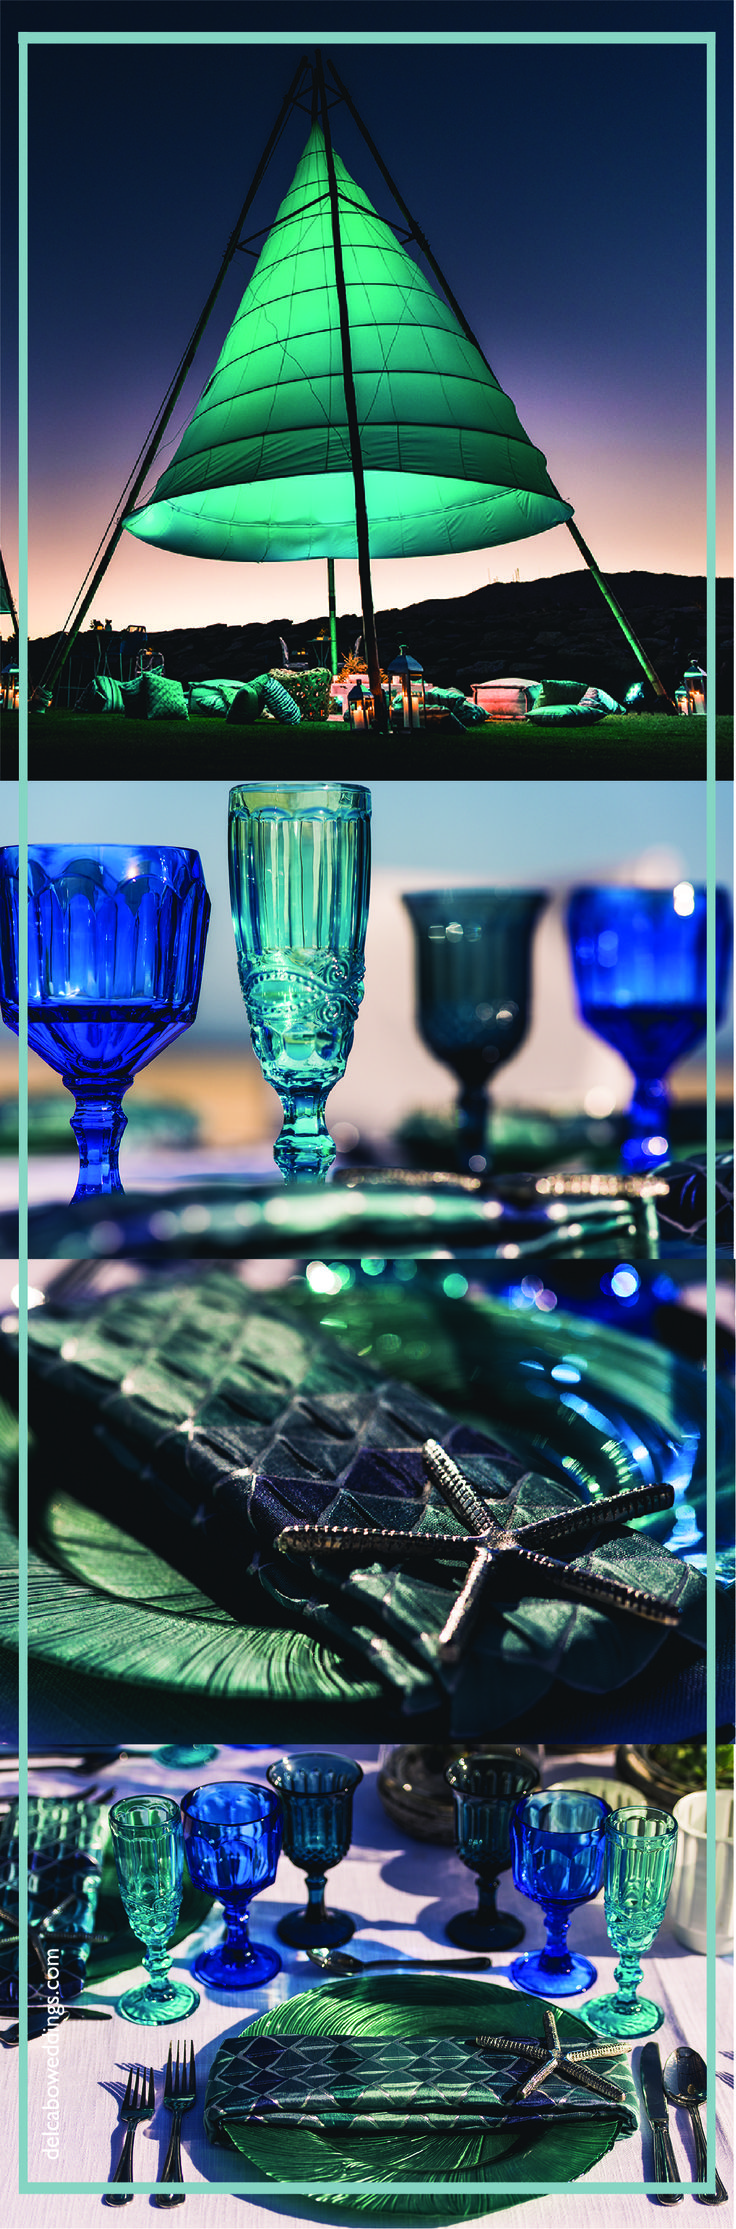 Sea glass colors, candles and lights for your beach wedding in Cabo! Get that Baja vibe at your destination wedding!   Click on the image and find our more about us! We will be happy to help you plan your wedding!